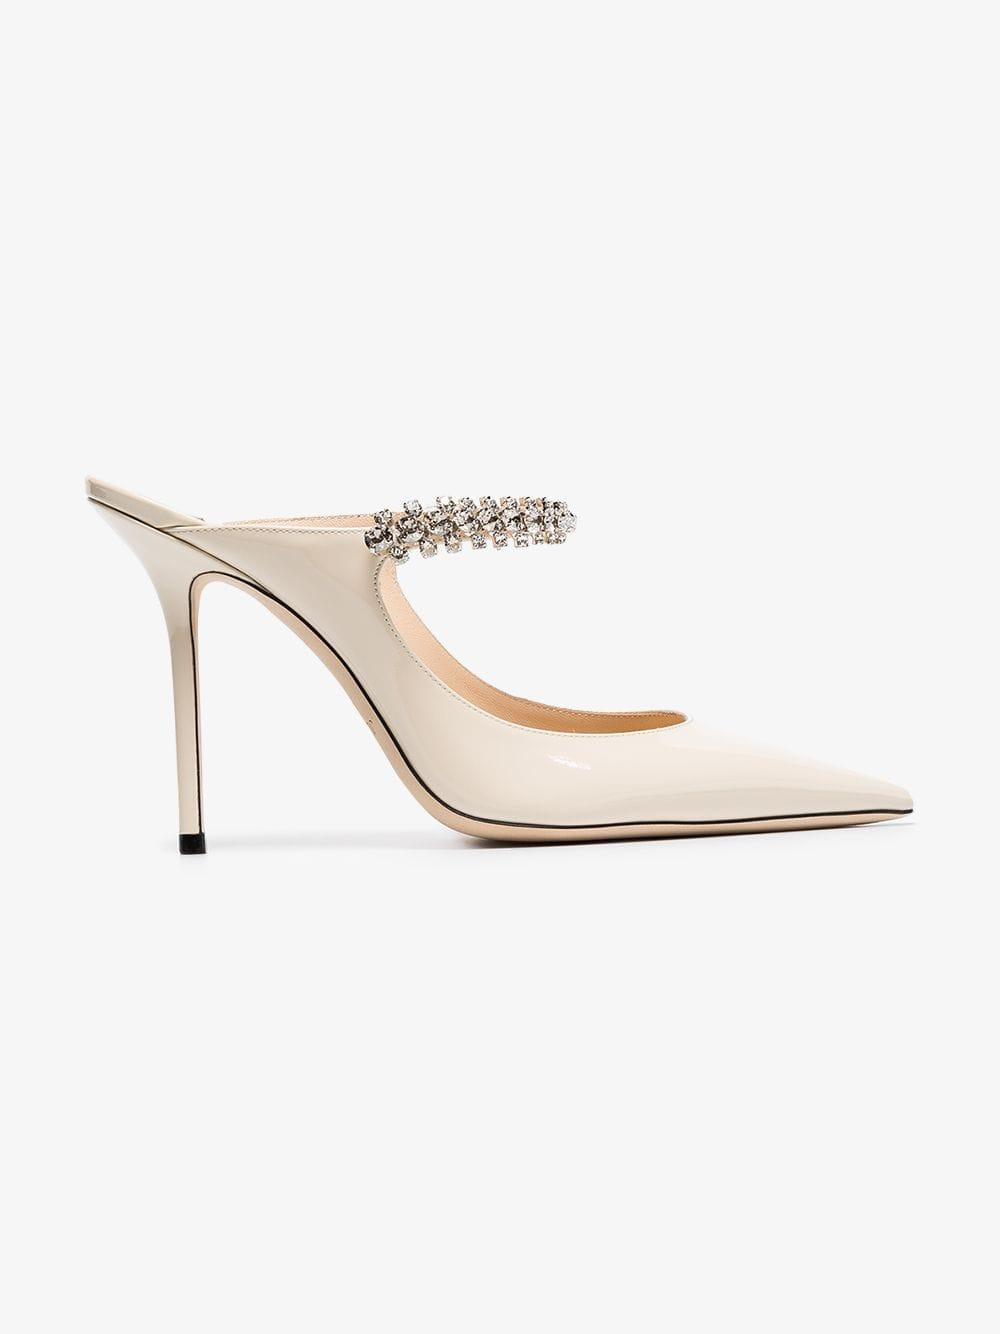 c4ec3d69d2f Jimmy Choo. Women s Linen White Bing 100 Crystal Anklet Patent Leather Mules